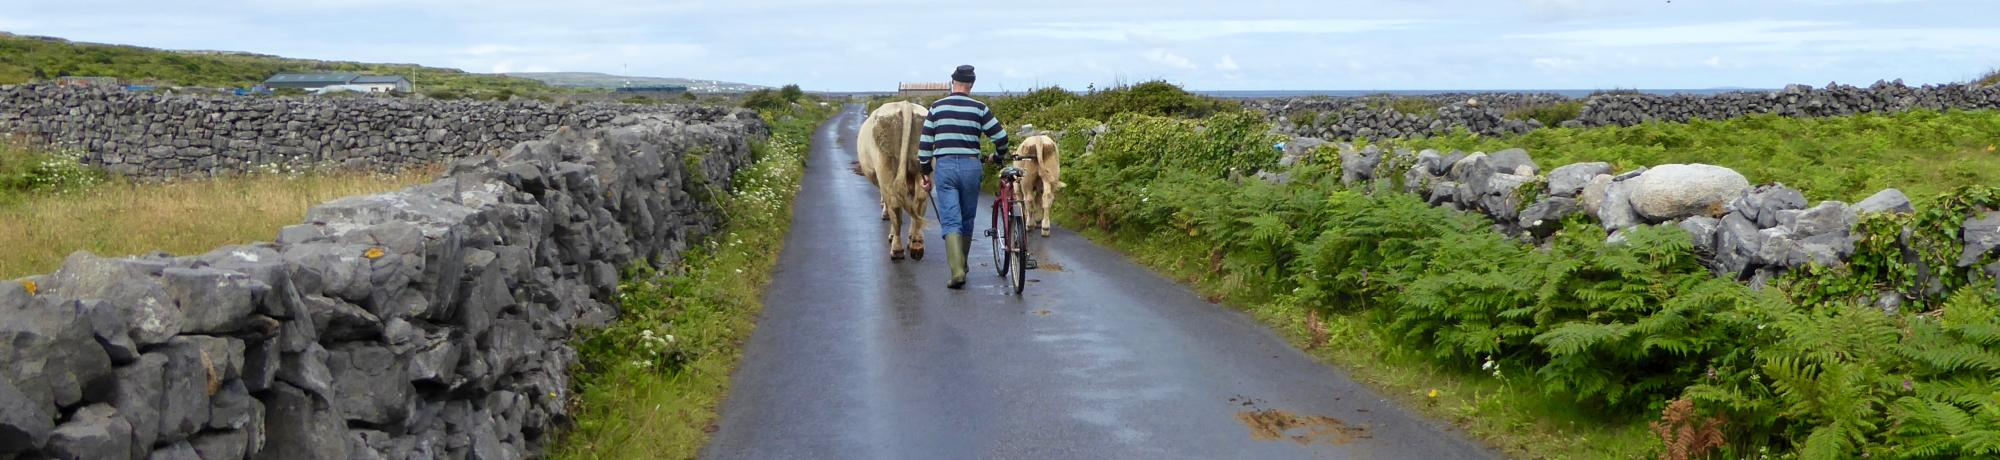 Kendra Moore's photo of a farmer walking two cows down a road bordered by green fields and low-lying rock walls